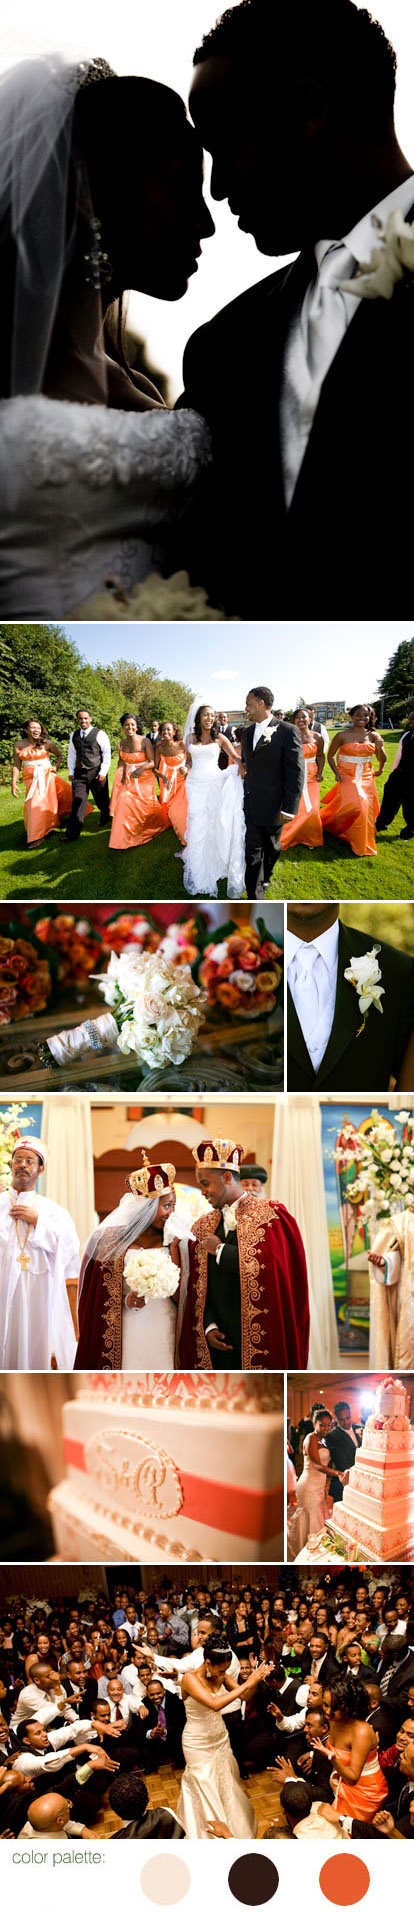 Beautiful Ethiopian real wedding, images by John and Joseph Photography